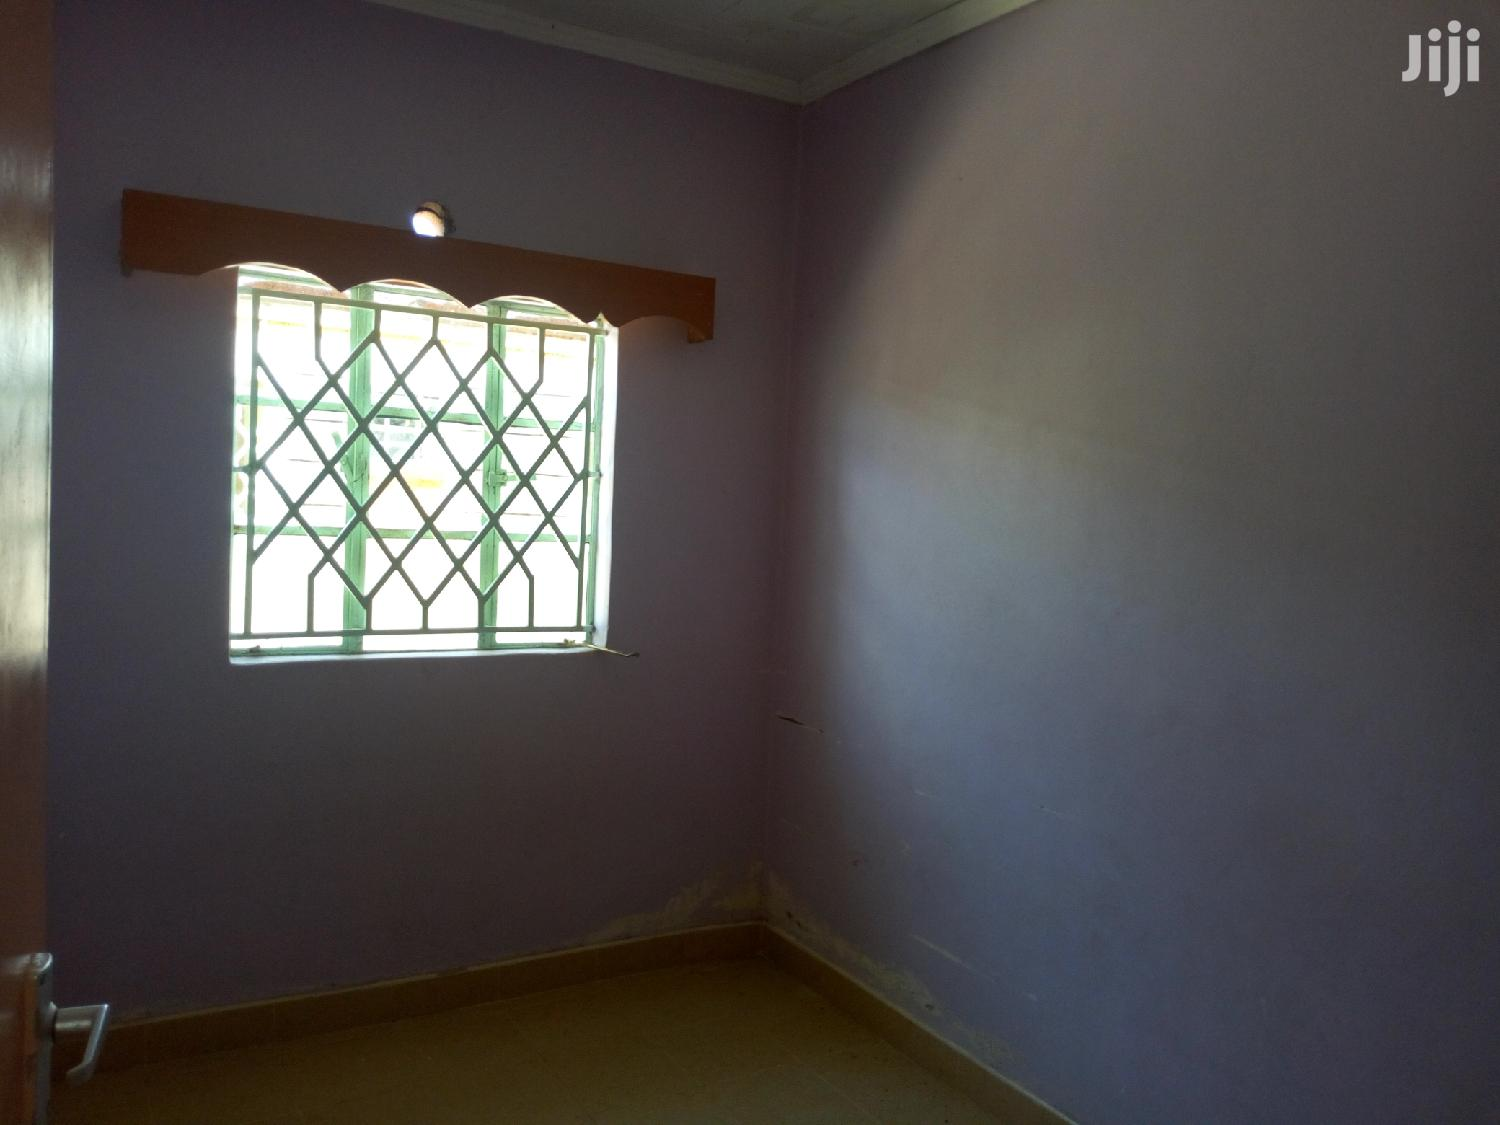 House For Sale In Lanet (Machine) | Houses & Apartments For Sale for sale in Nakuru East, Nakuru, Kenya